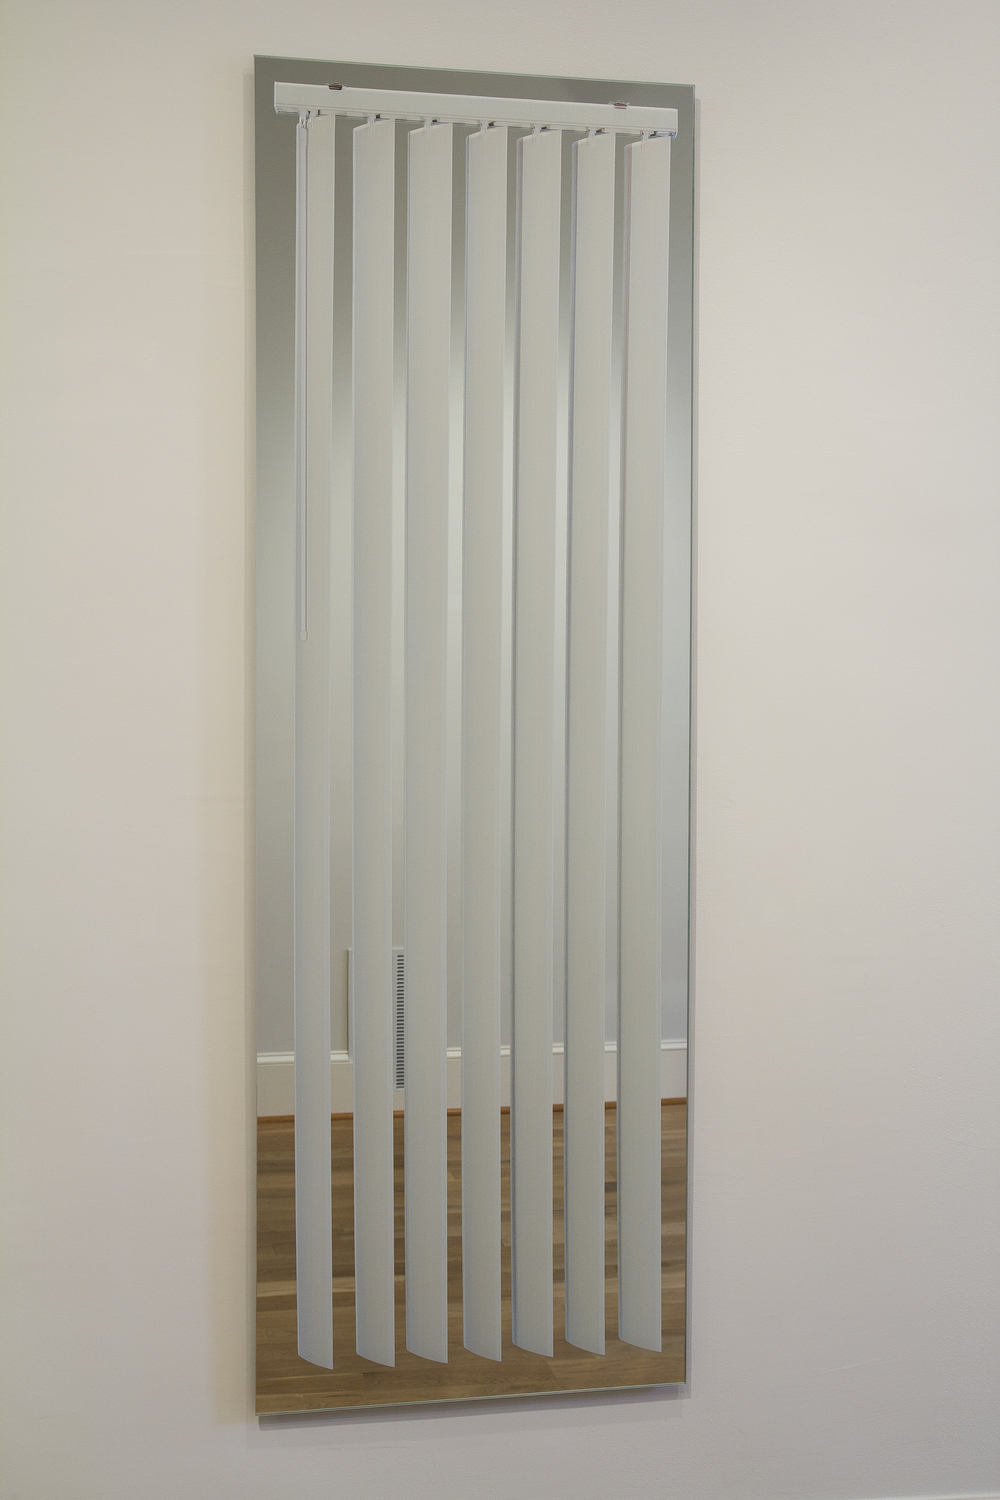 Dillin Window E Vertical Blinds on Mirror 2012 Semifinal file.jpg